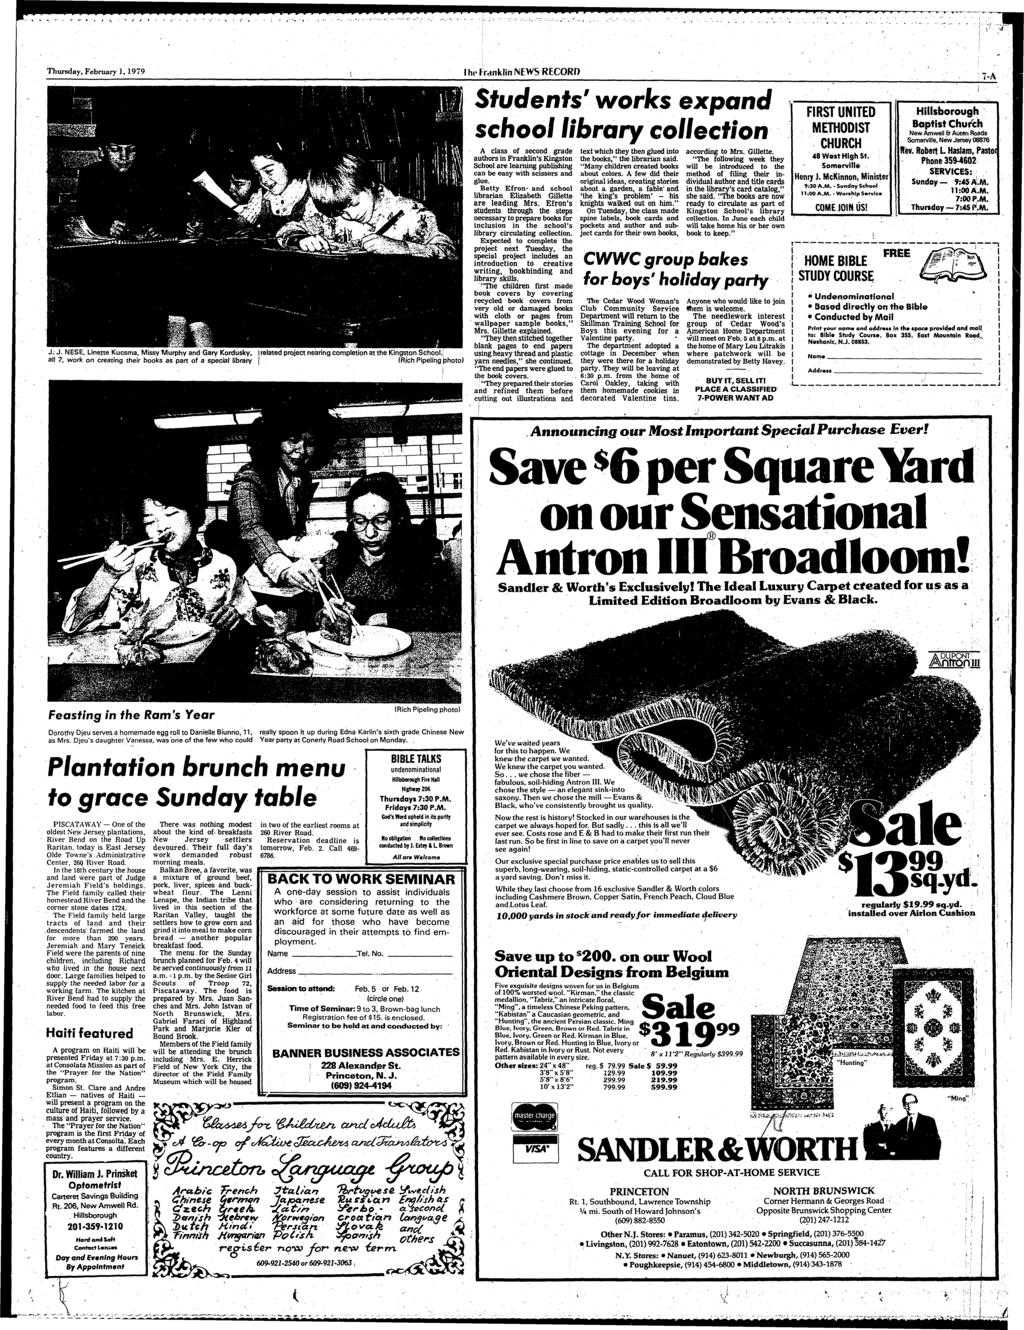 Franklin News Record Petrillo Named To Sewer Position Council Airs Porsche 1973 1914 Fuse Box Diagram Thursday February 11979 J Nese Linette Kucsma Missy Murphy And Gary